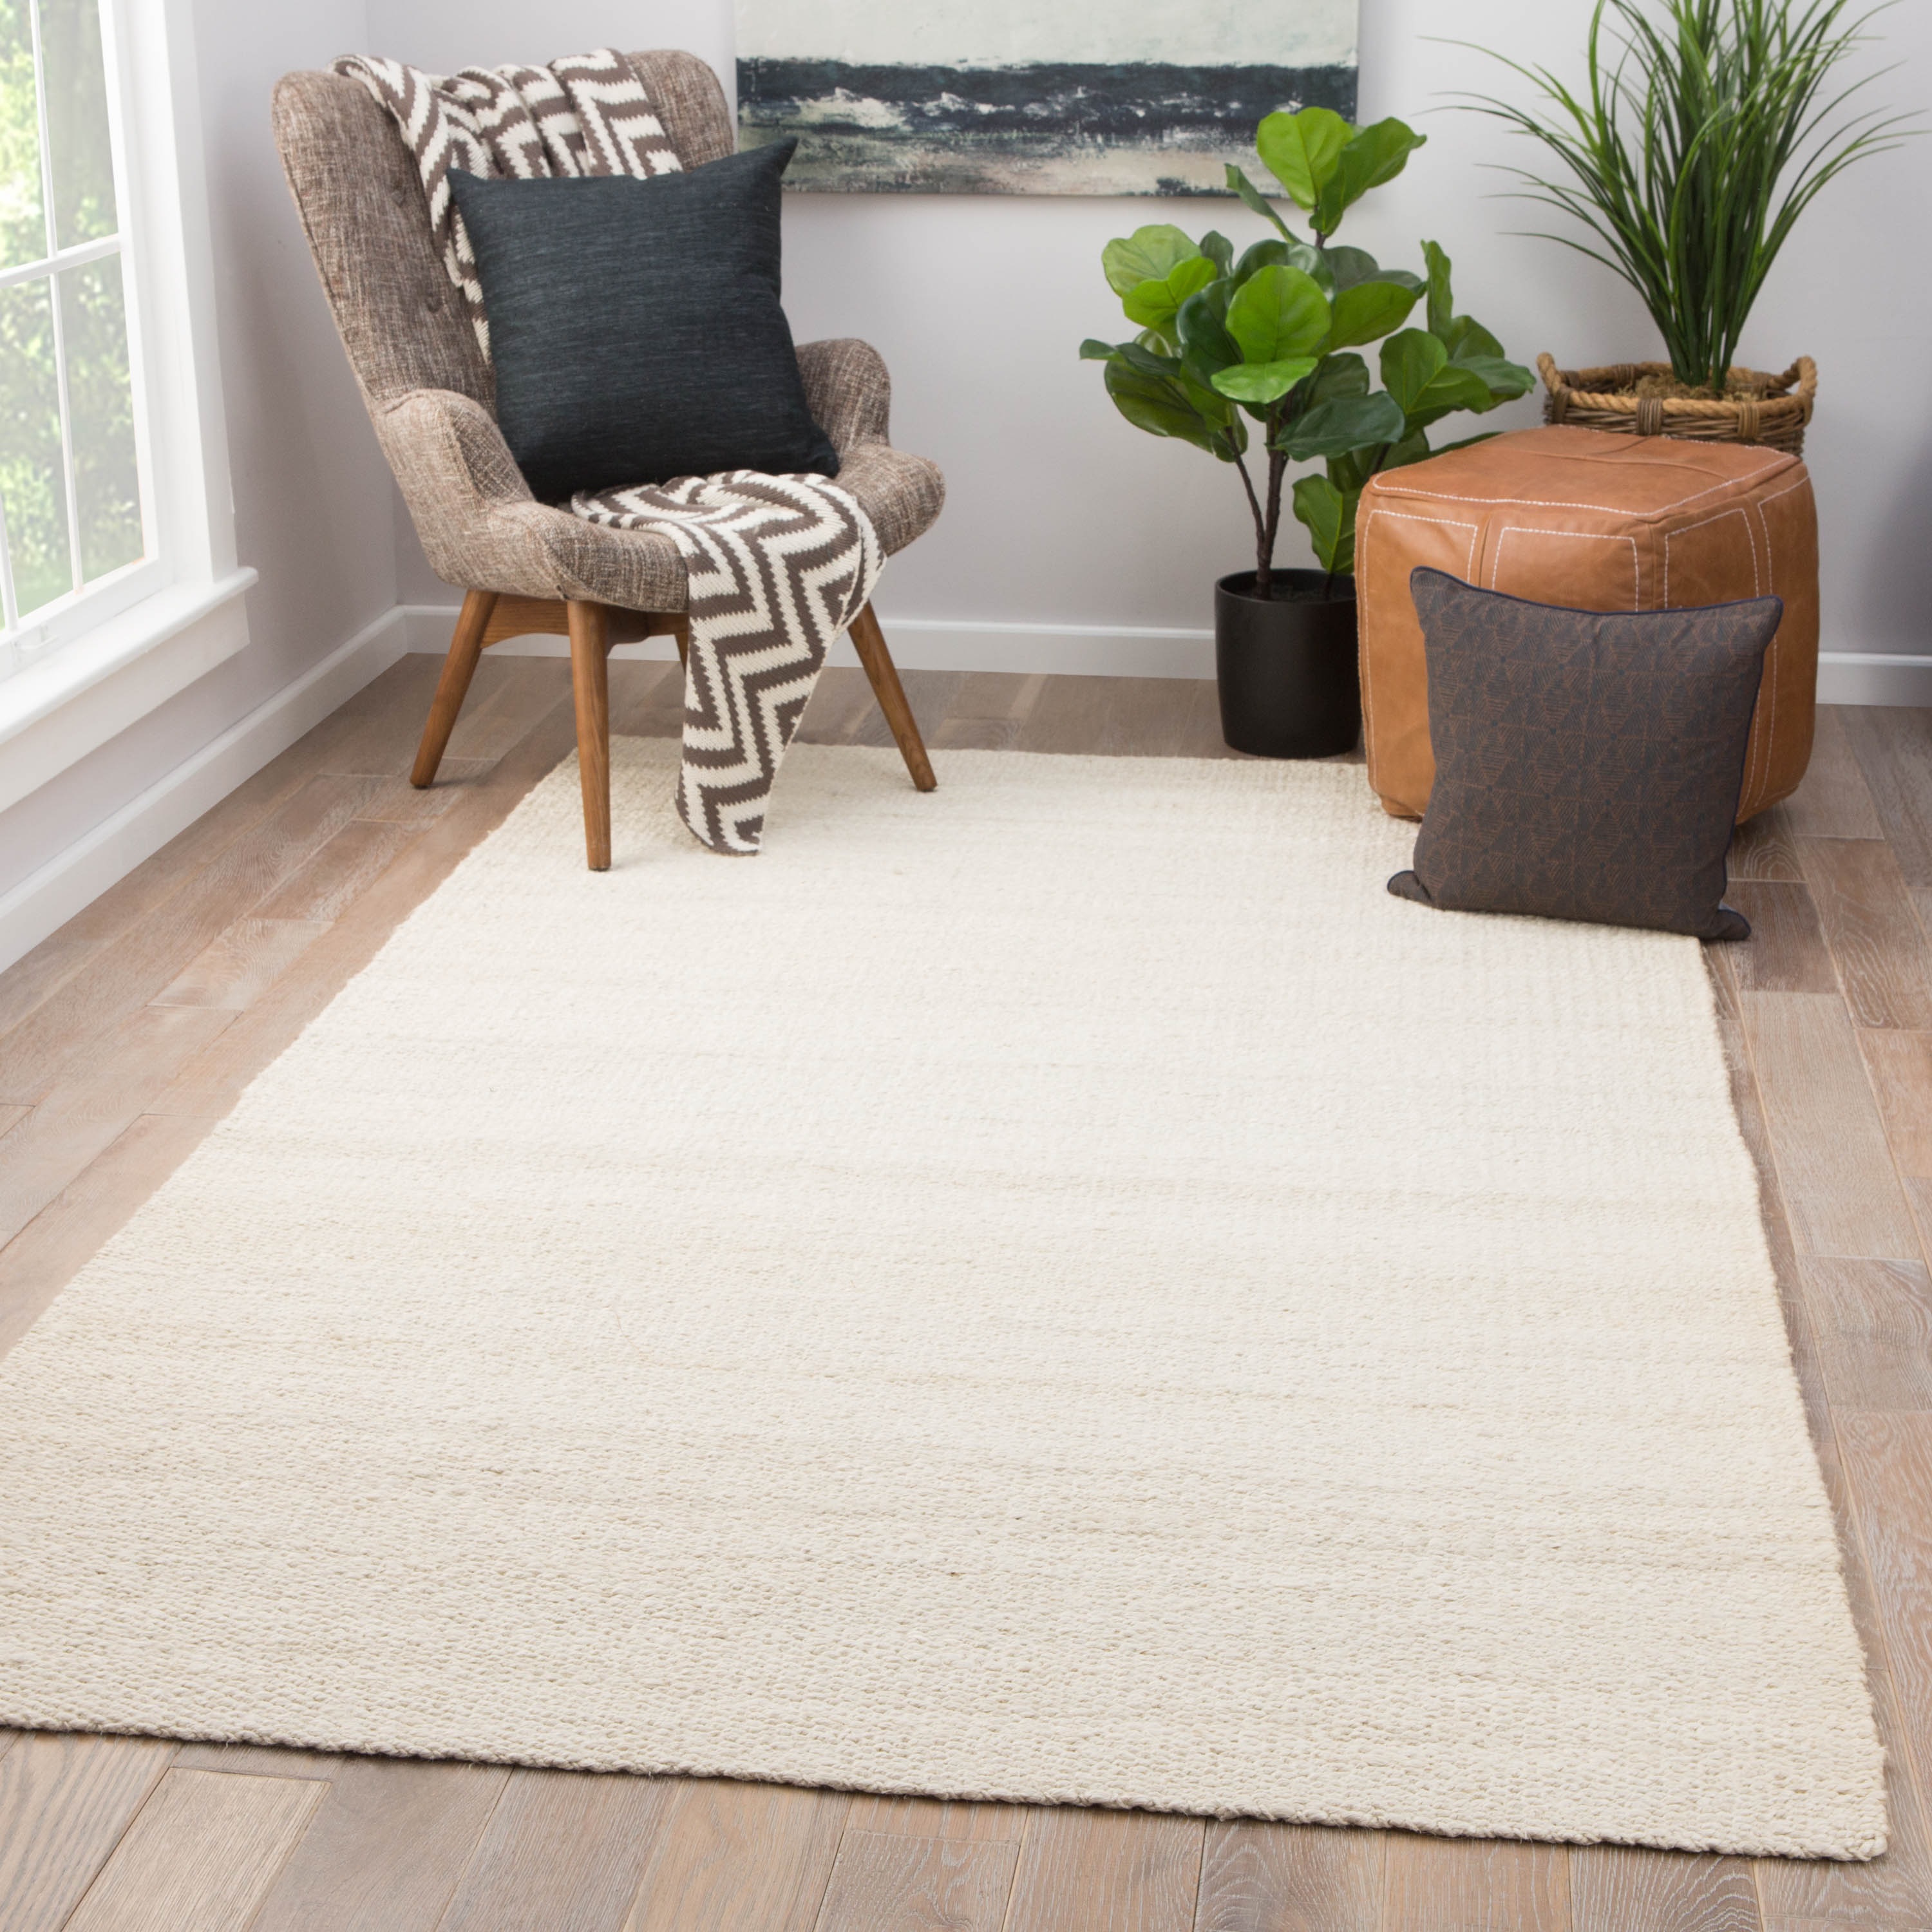 Rectangle White Solid Hand Loomed Jute & Natural Fibers Contemporary recommended for Bedroom, Bathroom, Dining Room, Office, Hallway, Living Room